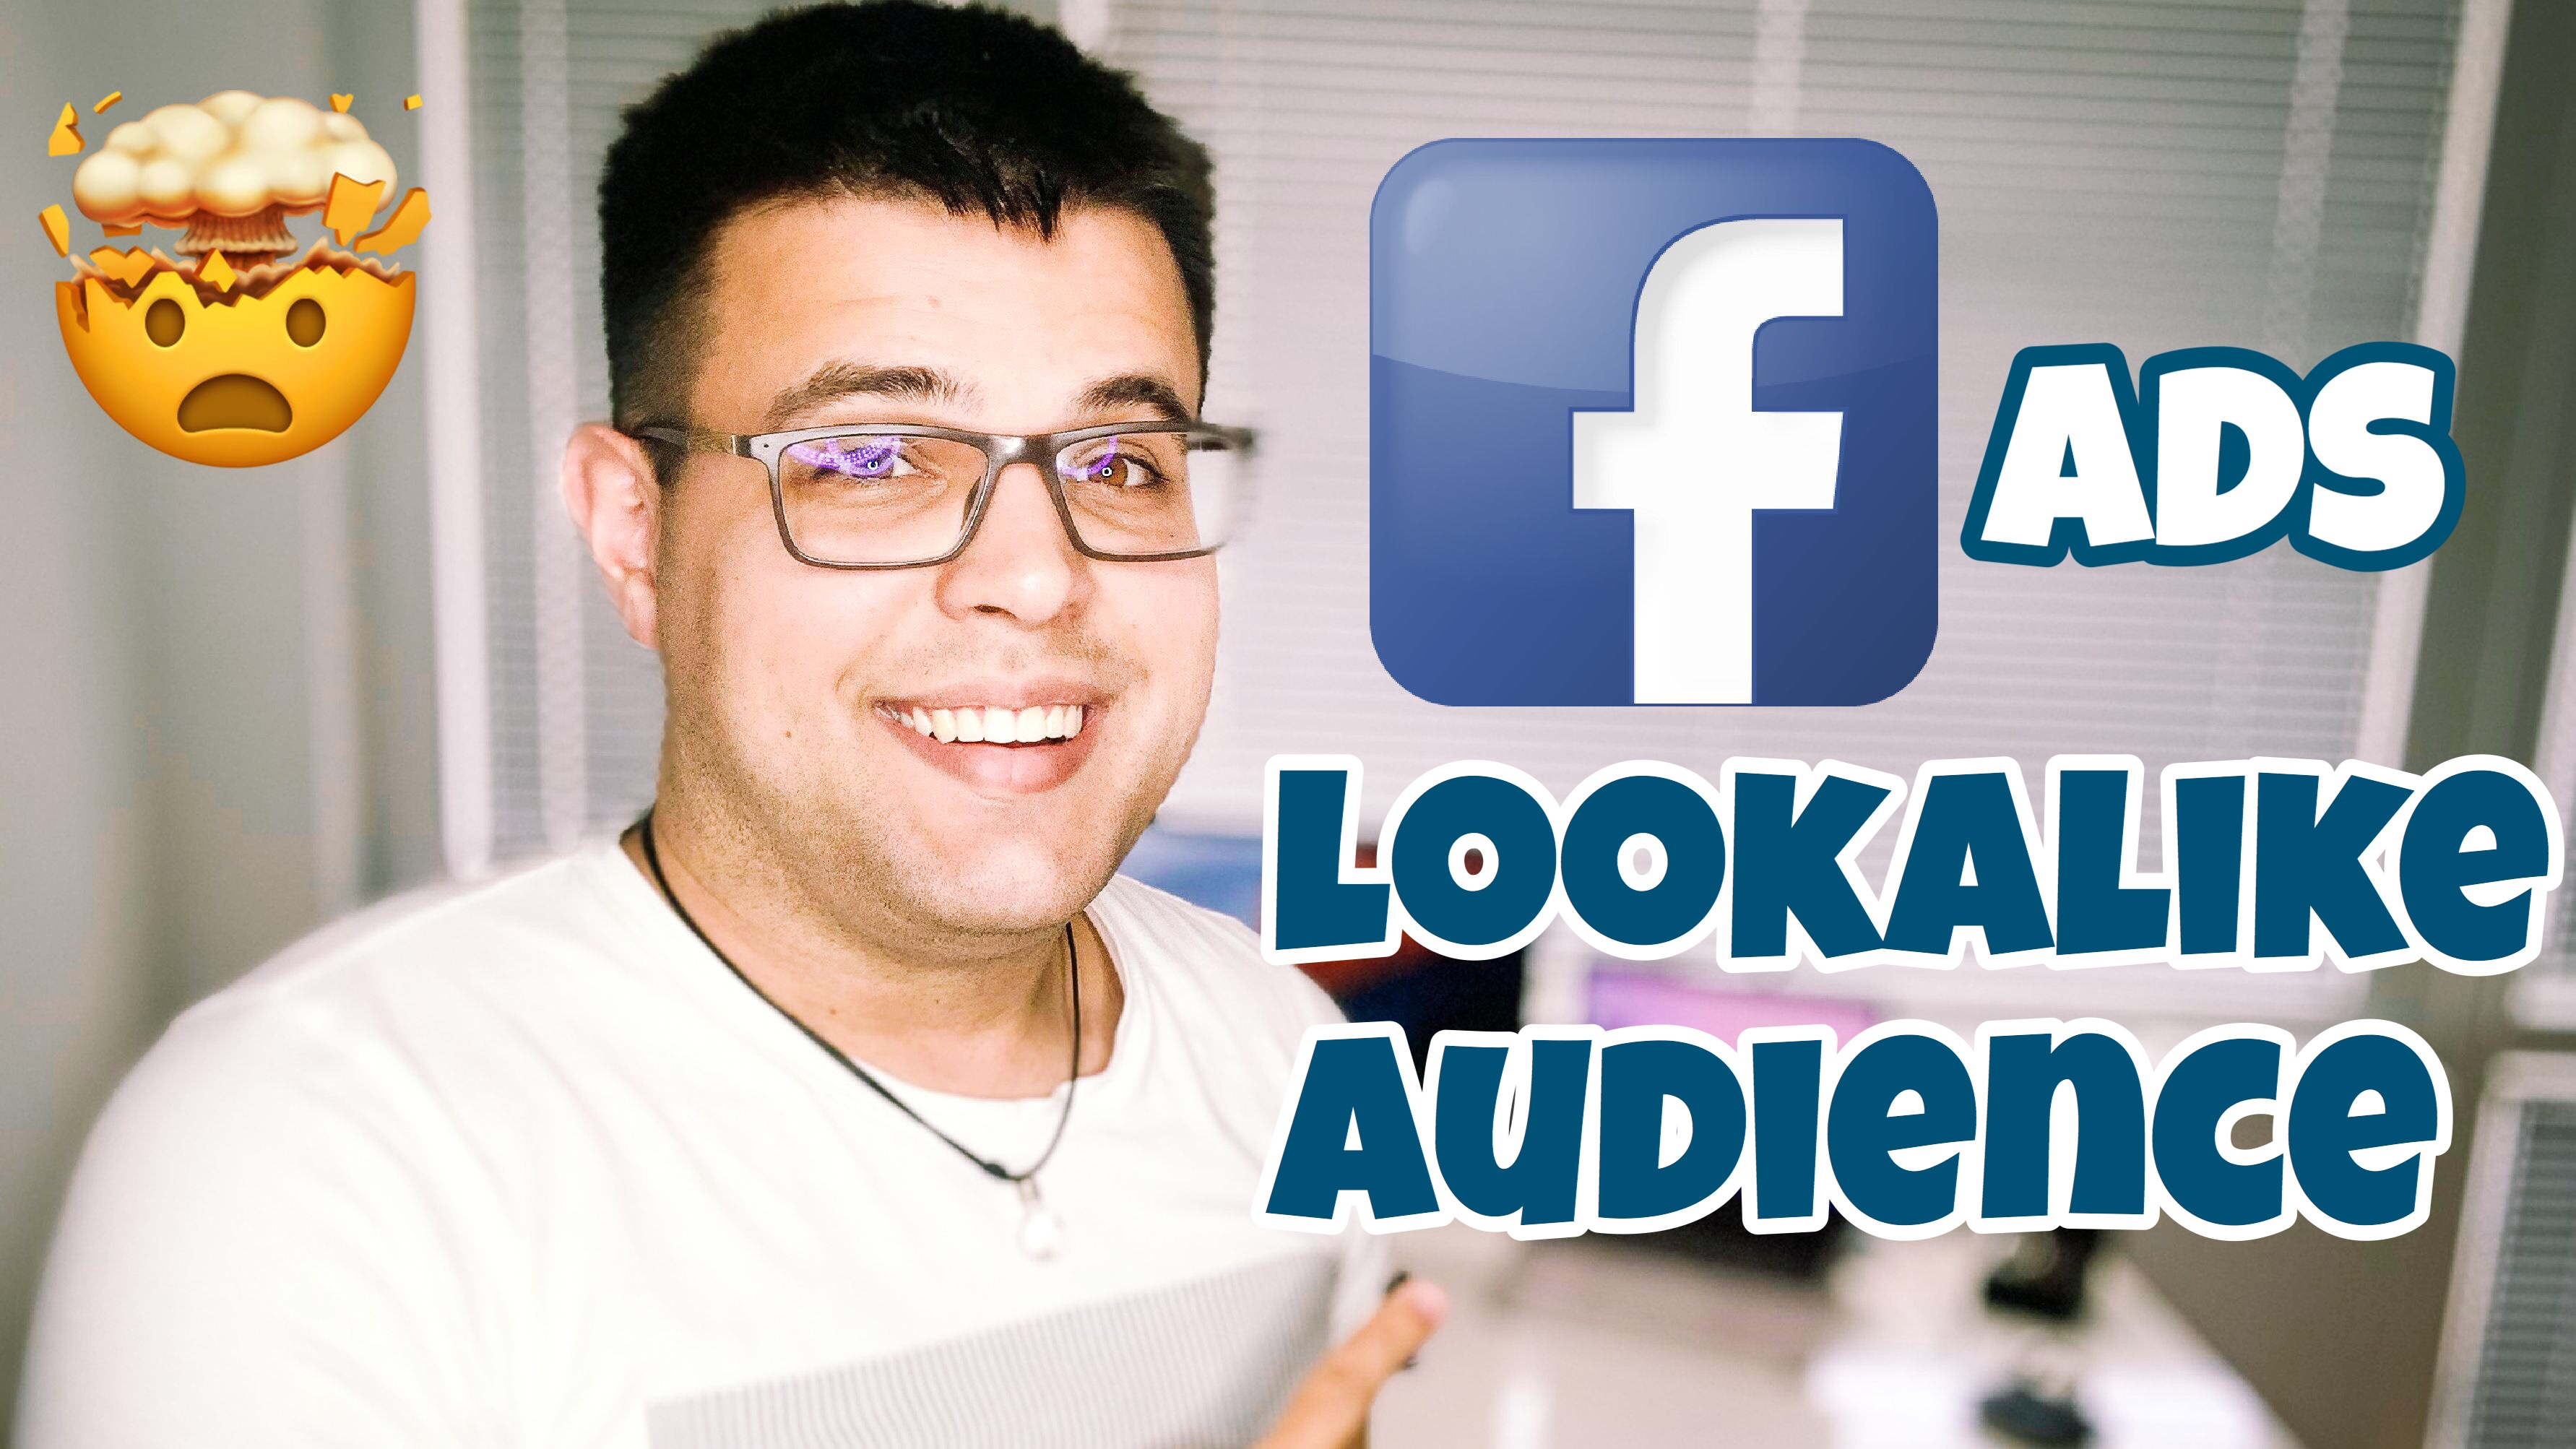 facebook ads lookalike audience